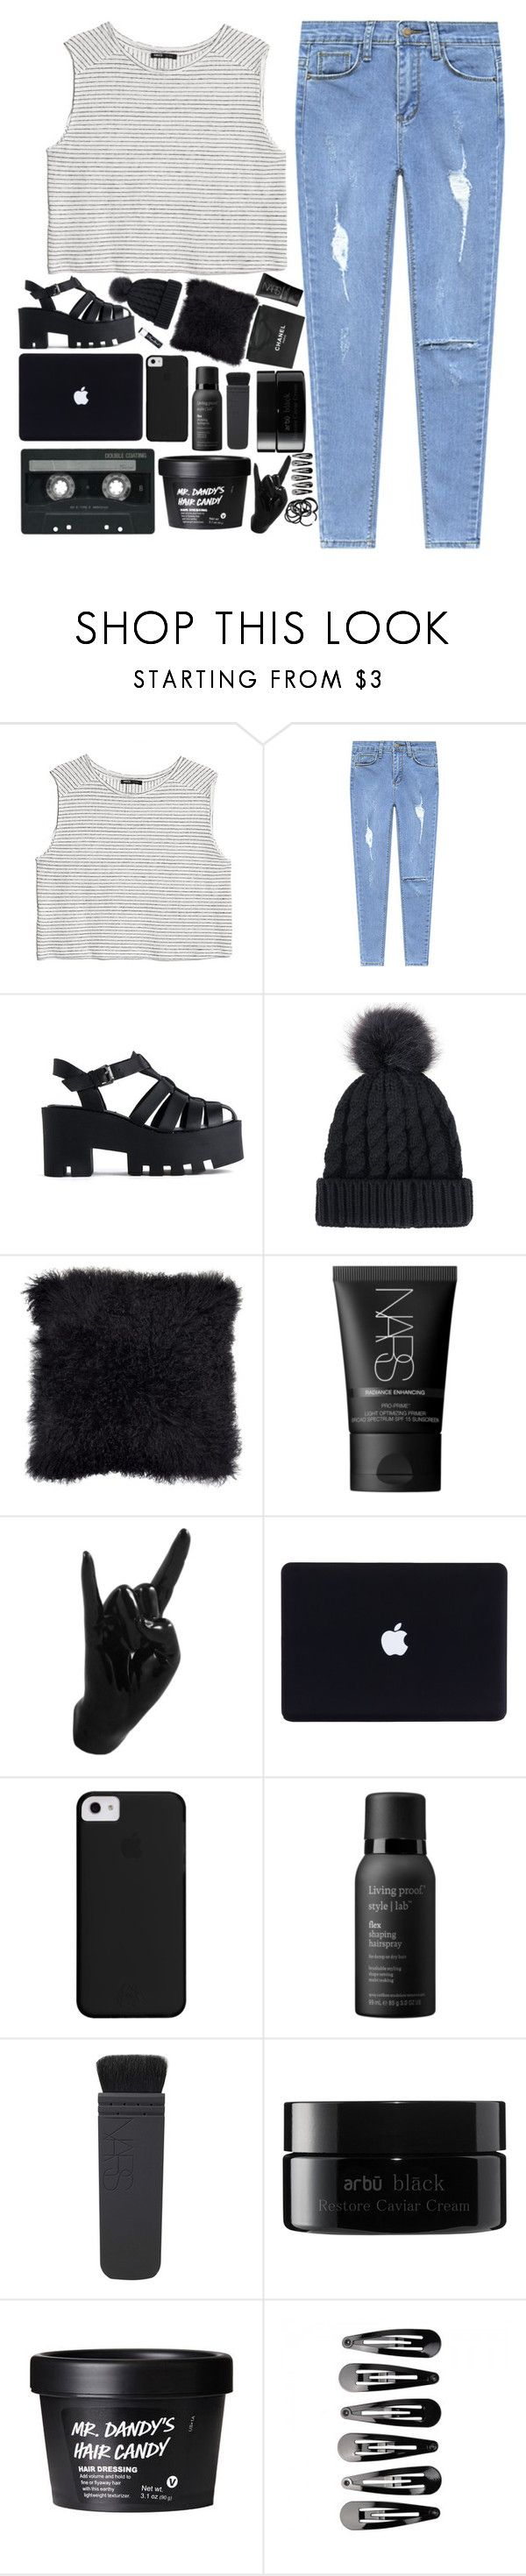 """""""× w r e n × m u s i c × c h a l l e n g e ×"""" by when-you-listen ❤ liked on Polyvore featuring MANGO, Windsor Smith, Chanel, NARS Cosmetics, Thelermont Hupton, CASSETTE, Living Proof, Chapstick, arbÅ« and H&M"""